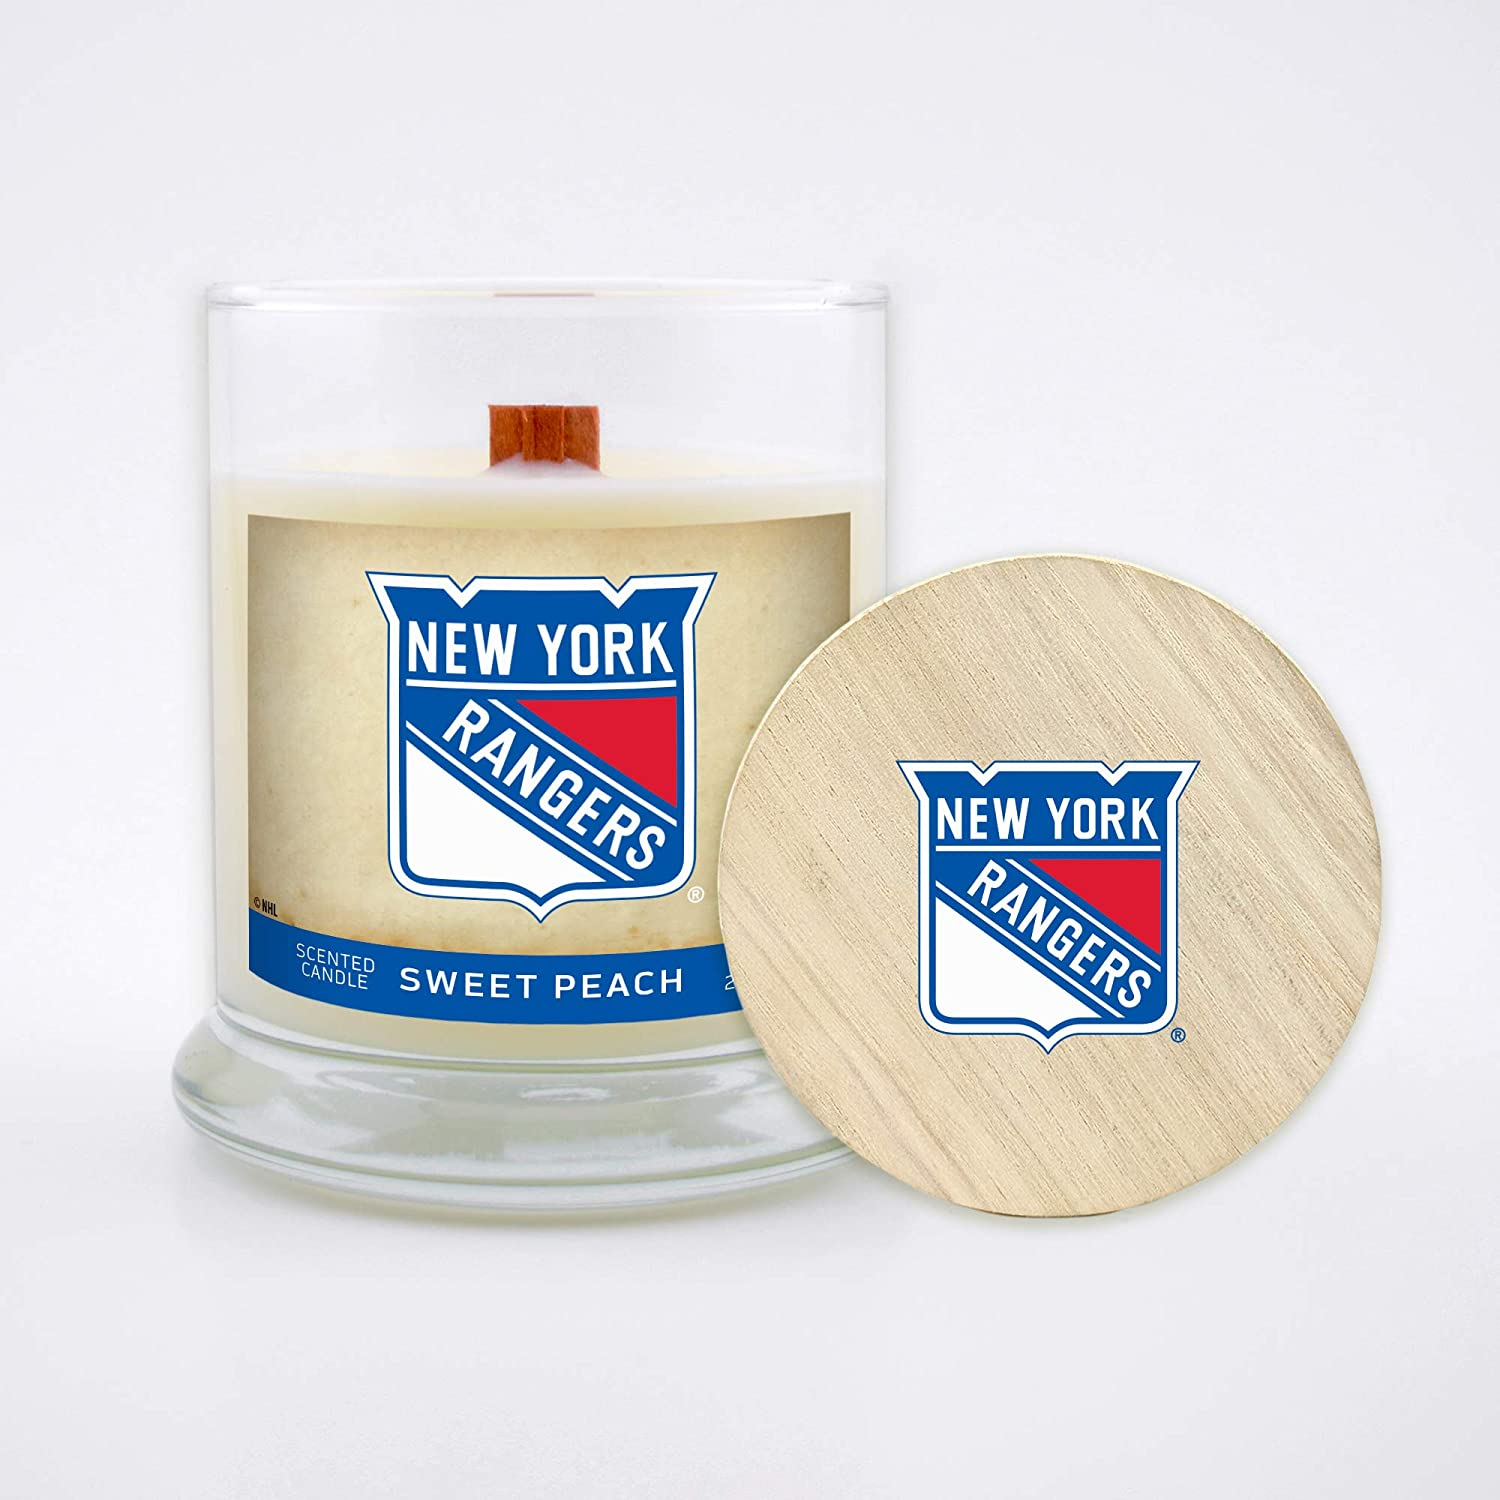 Sweet Peach Anaheim Ducks Worthy Promo NHL NHL Scented Candle 8 Oz Soy Wax Wood Wick and Lid